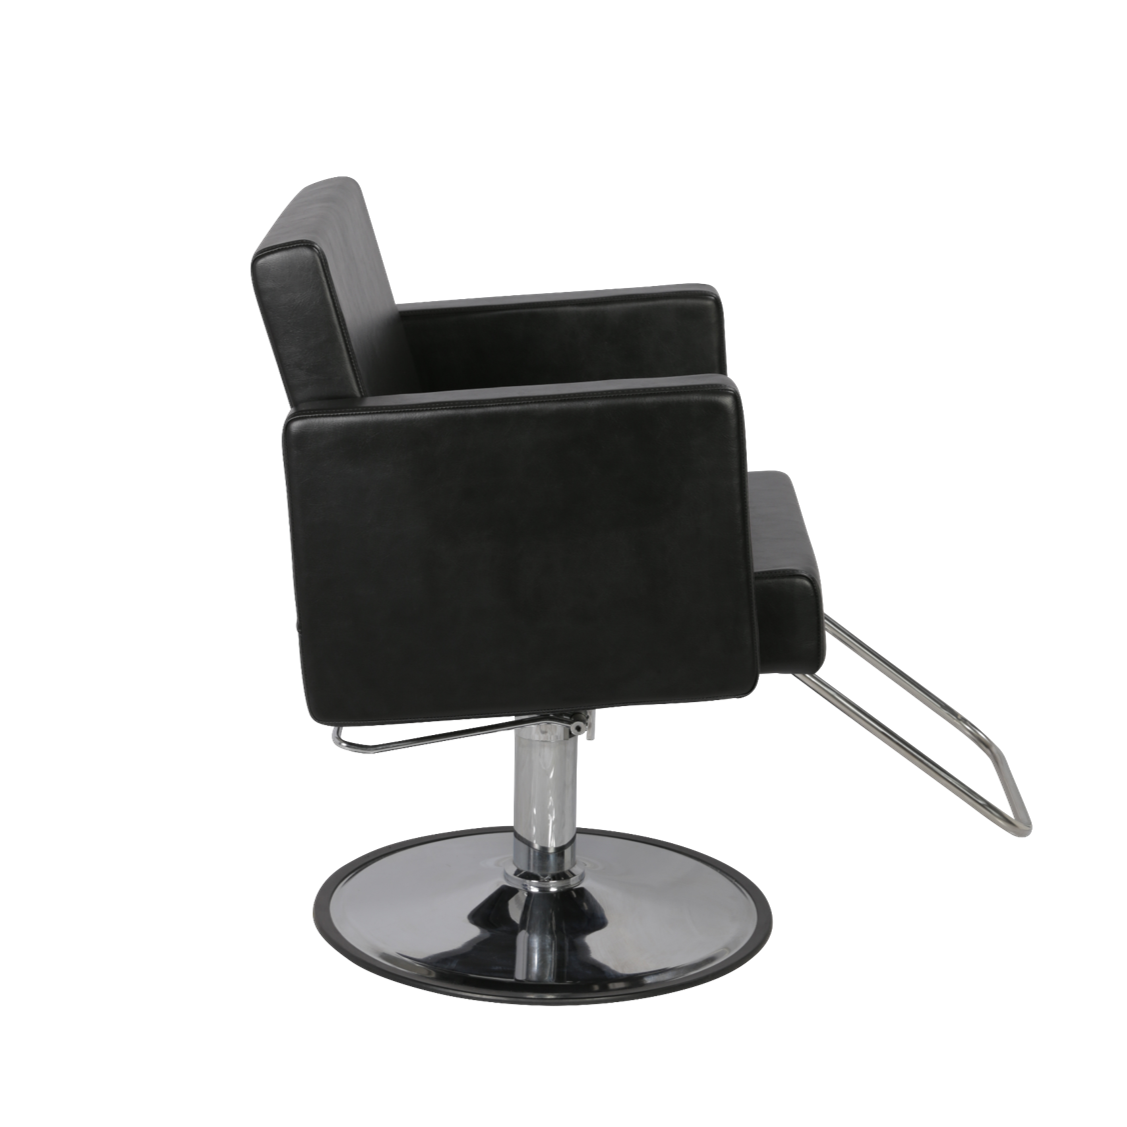 Larkin Salon Styling Chair - Garfield Commercial Enterprises Salon Equipment Spa Furniture Barber Chair Luxury